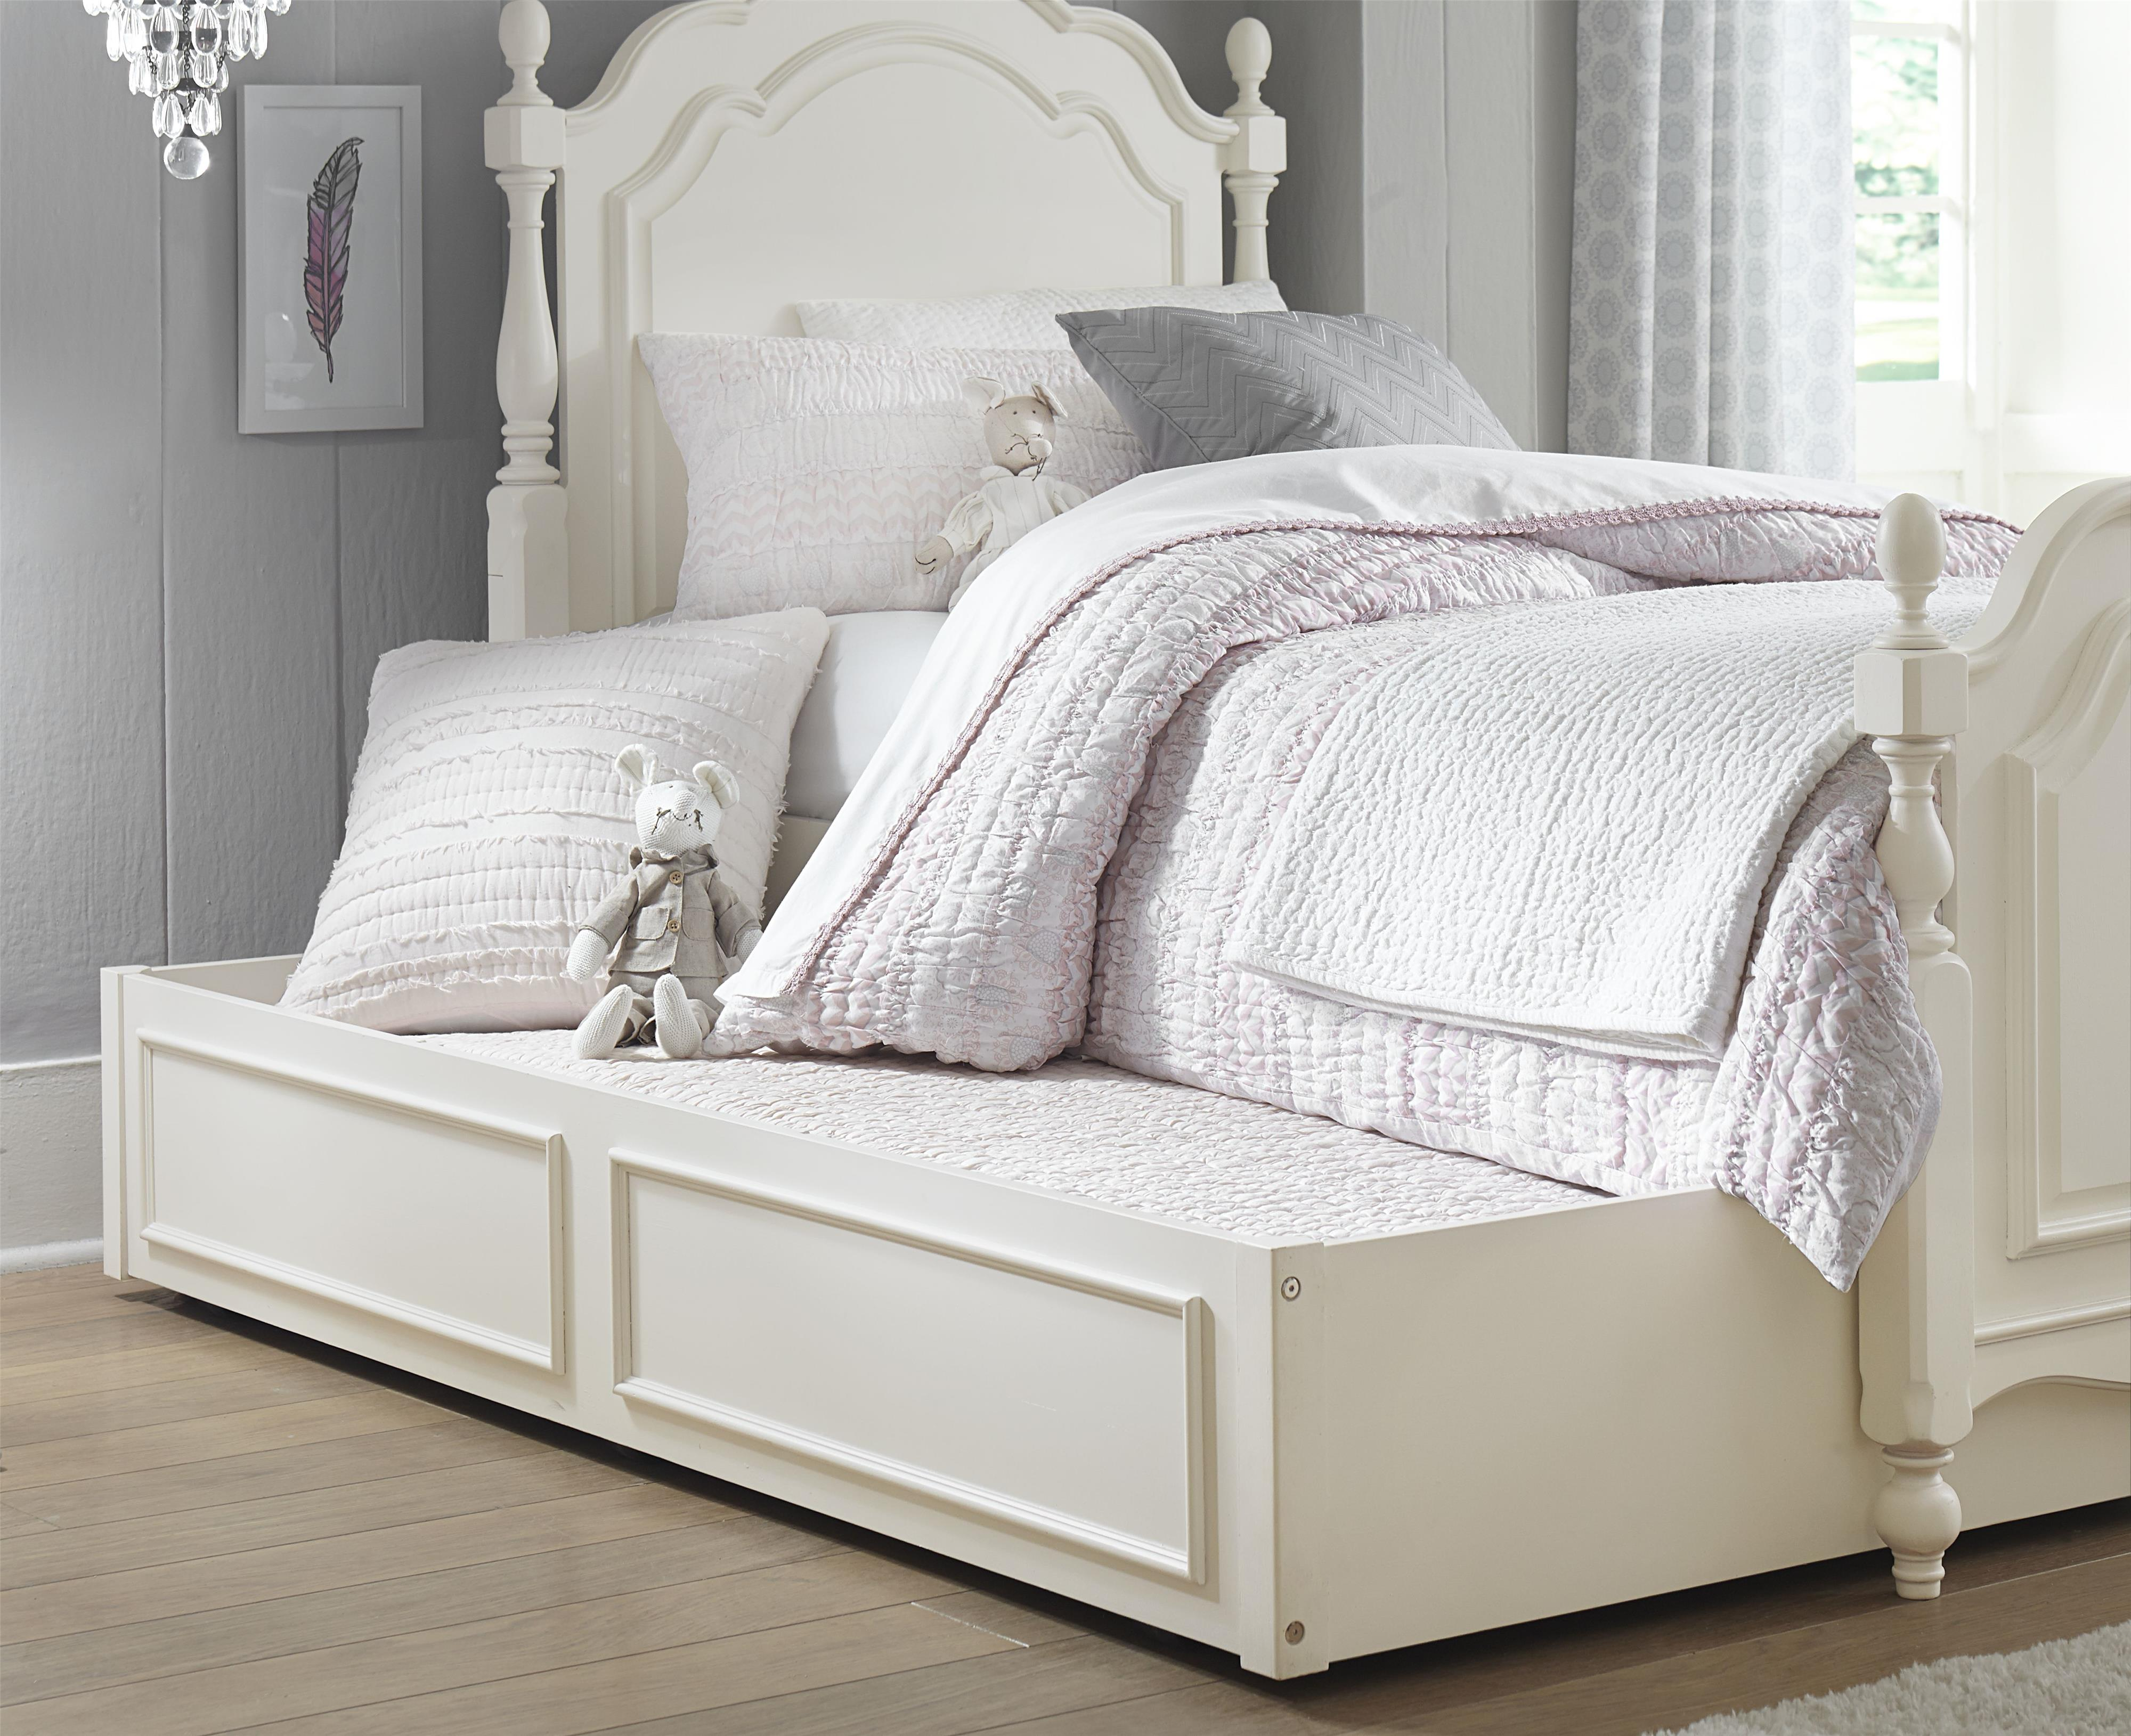 Legacy classic kids harmony summerset low poster full bed for Legacy classic bed